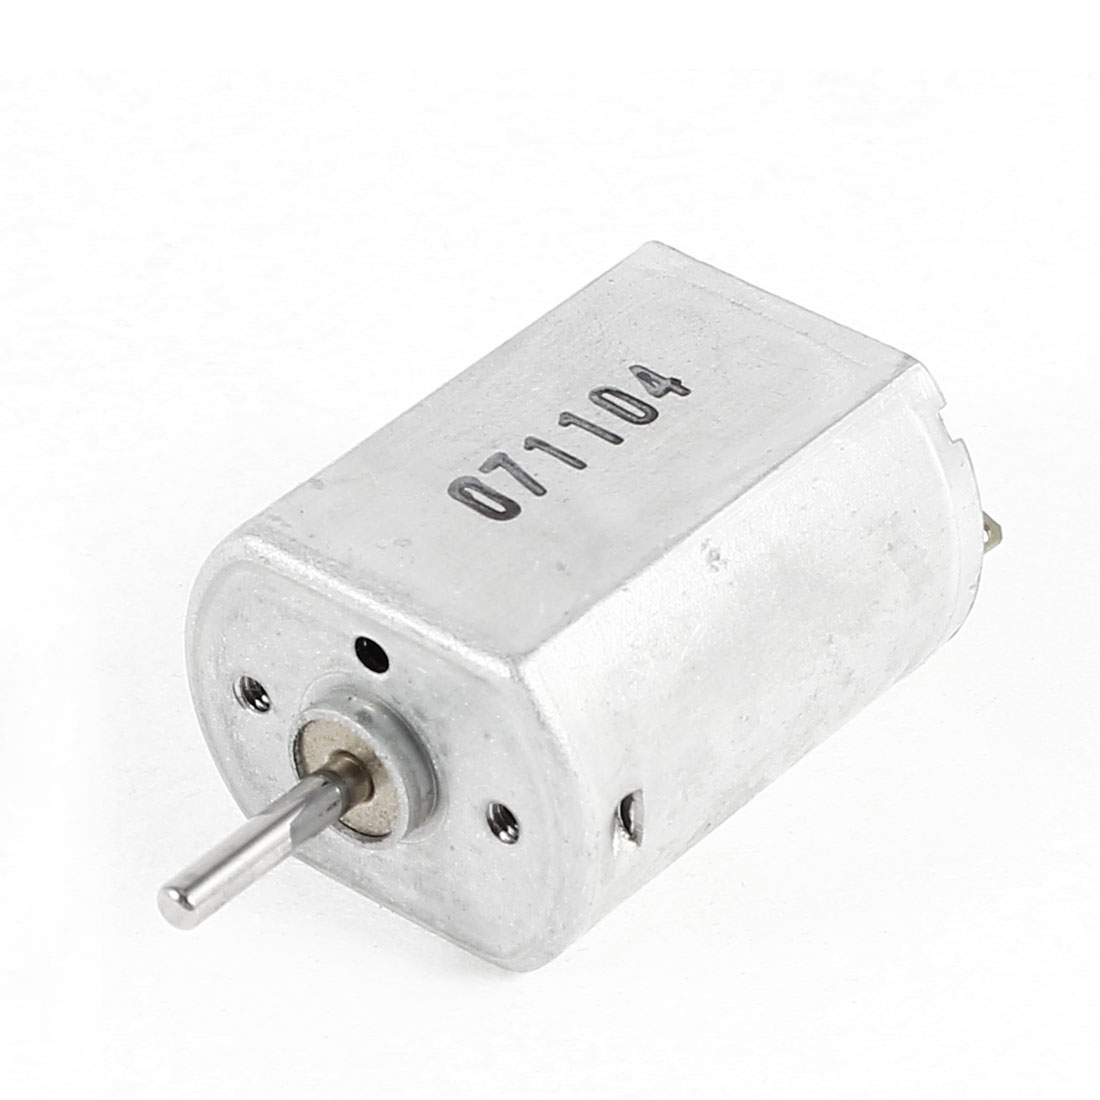 DC 6V 7000RPM High Speed Metal Cover 2mm Diameter Axle Micro Electric Motor